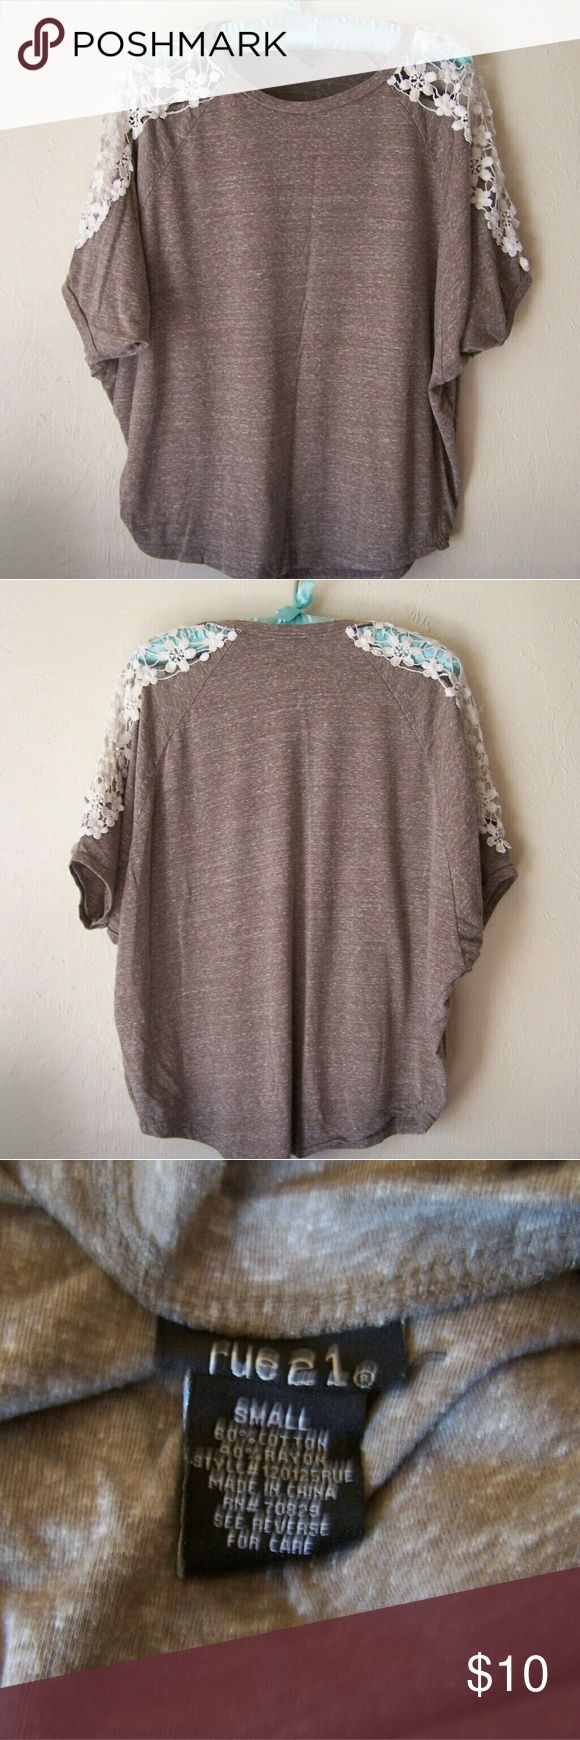 Heathered Brown Batwing | Lace Sleeves A beautiful heathered brown/tan batwing style blouse.  Made of soft t-shirt type material with cream crocheted inserts on tops of both sleeves.  No signs of wear. Tops